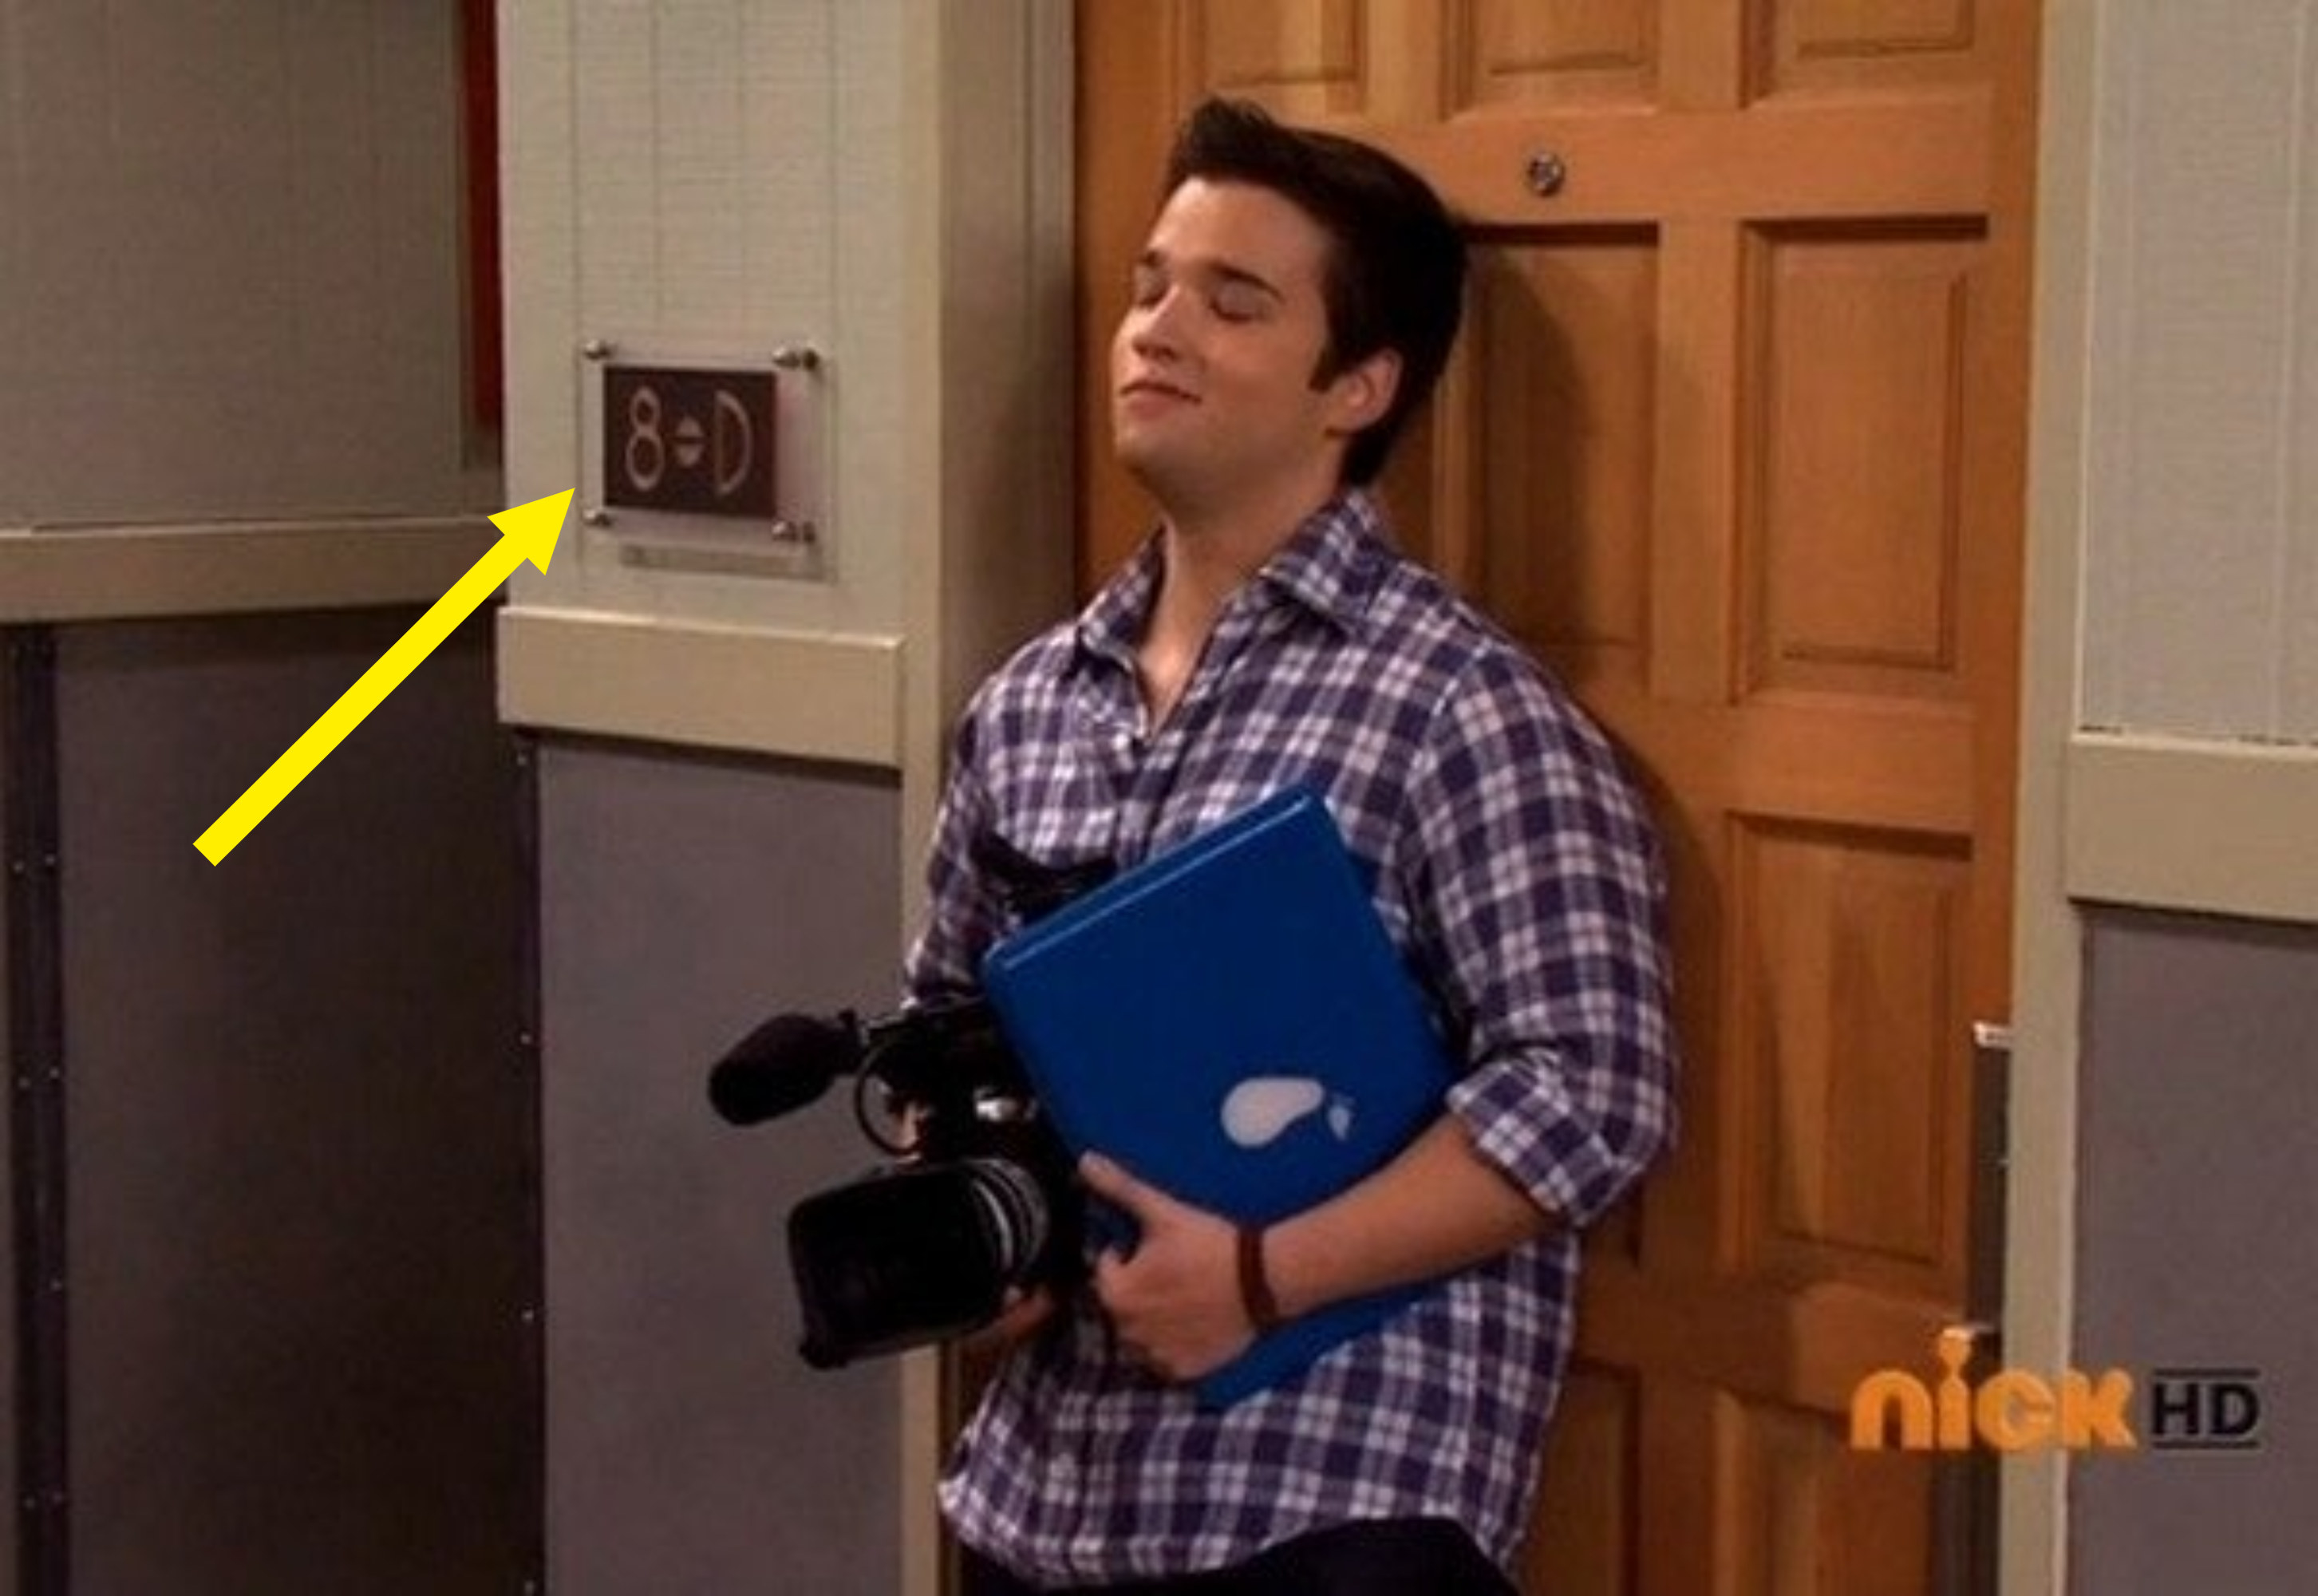 Freddie from iCarly standing in front of his apartment door and the apartment number is 8=D as if to look like a penis.